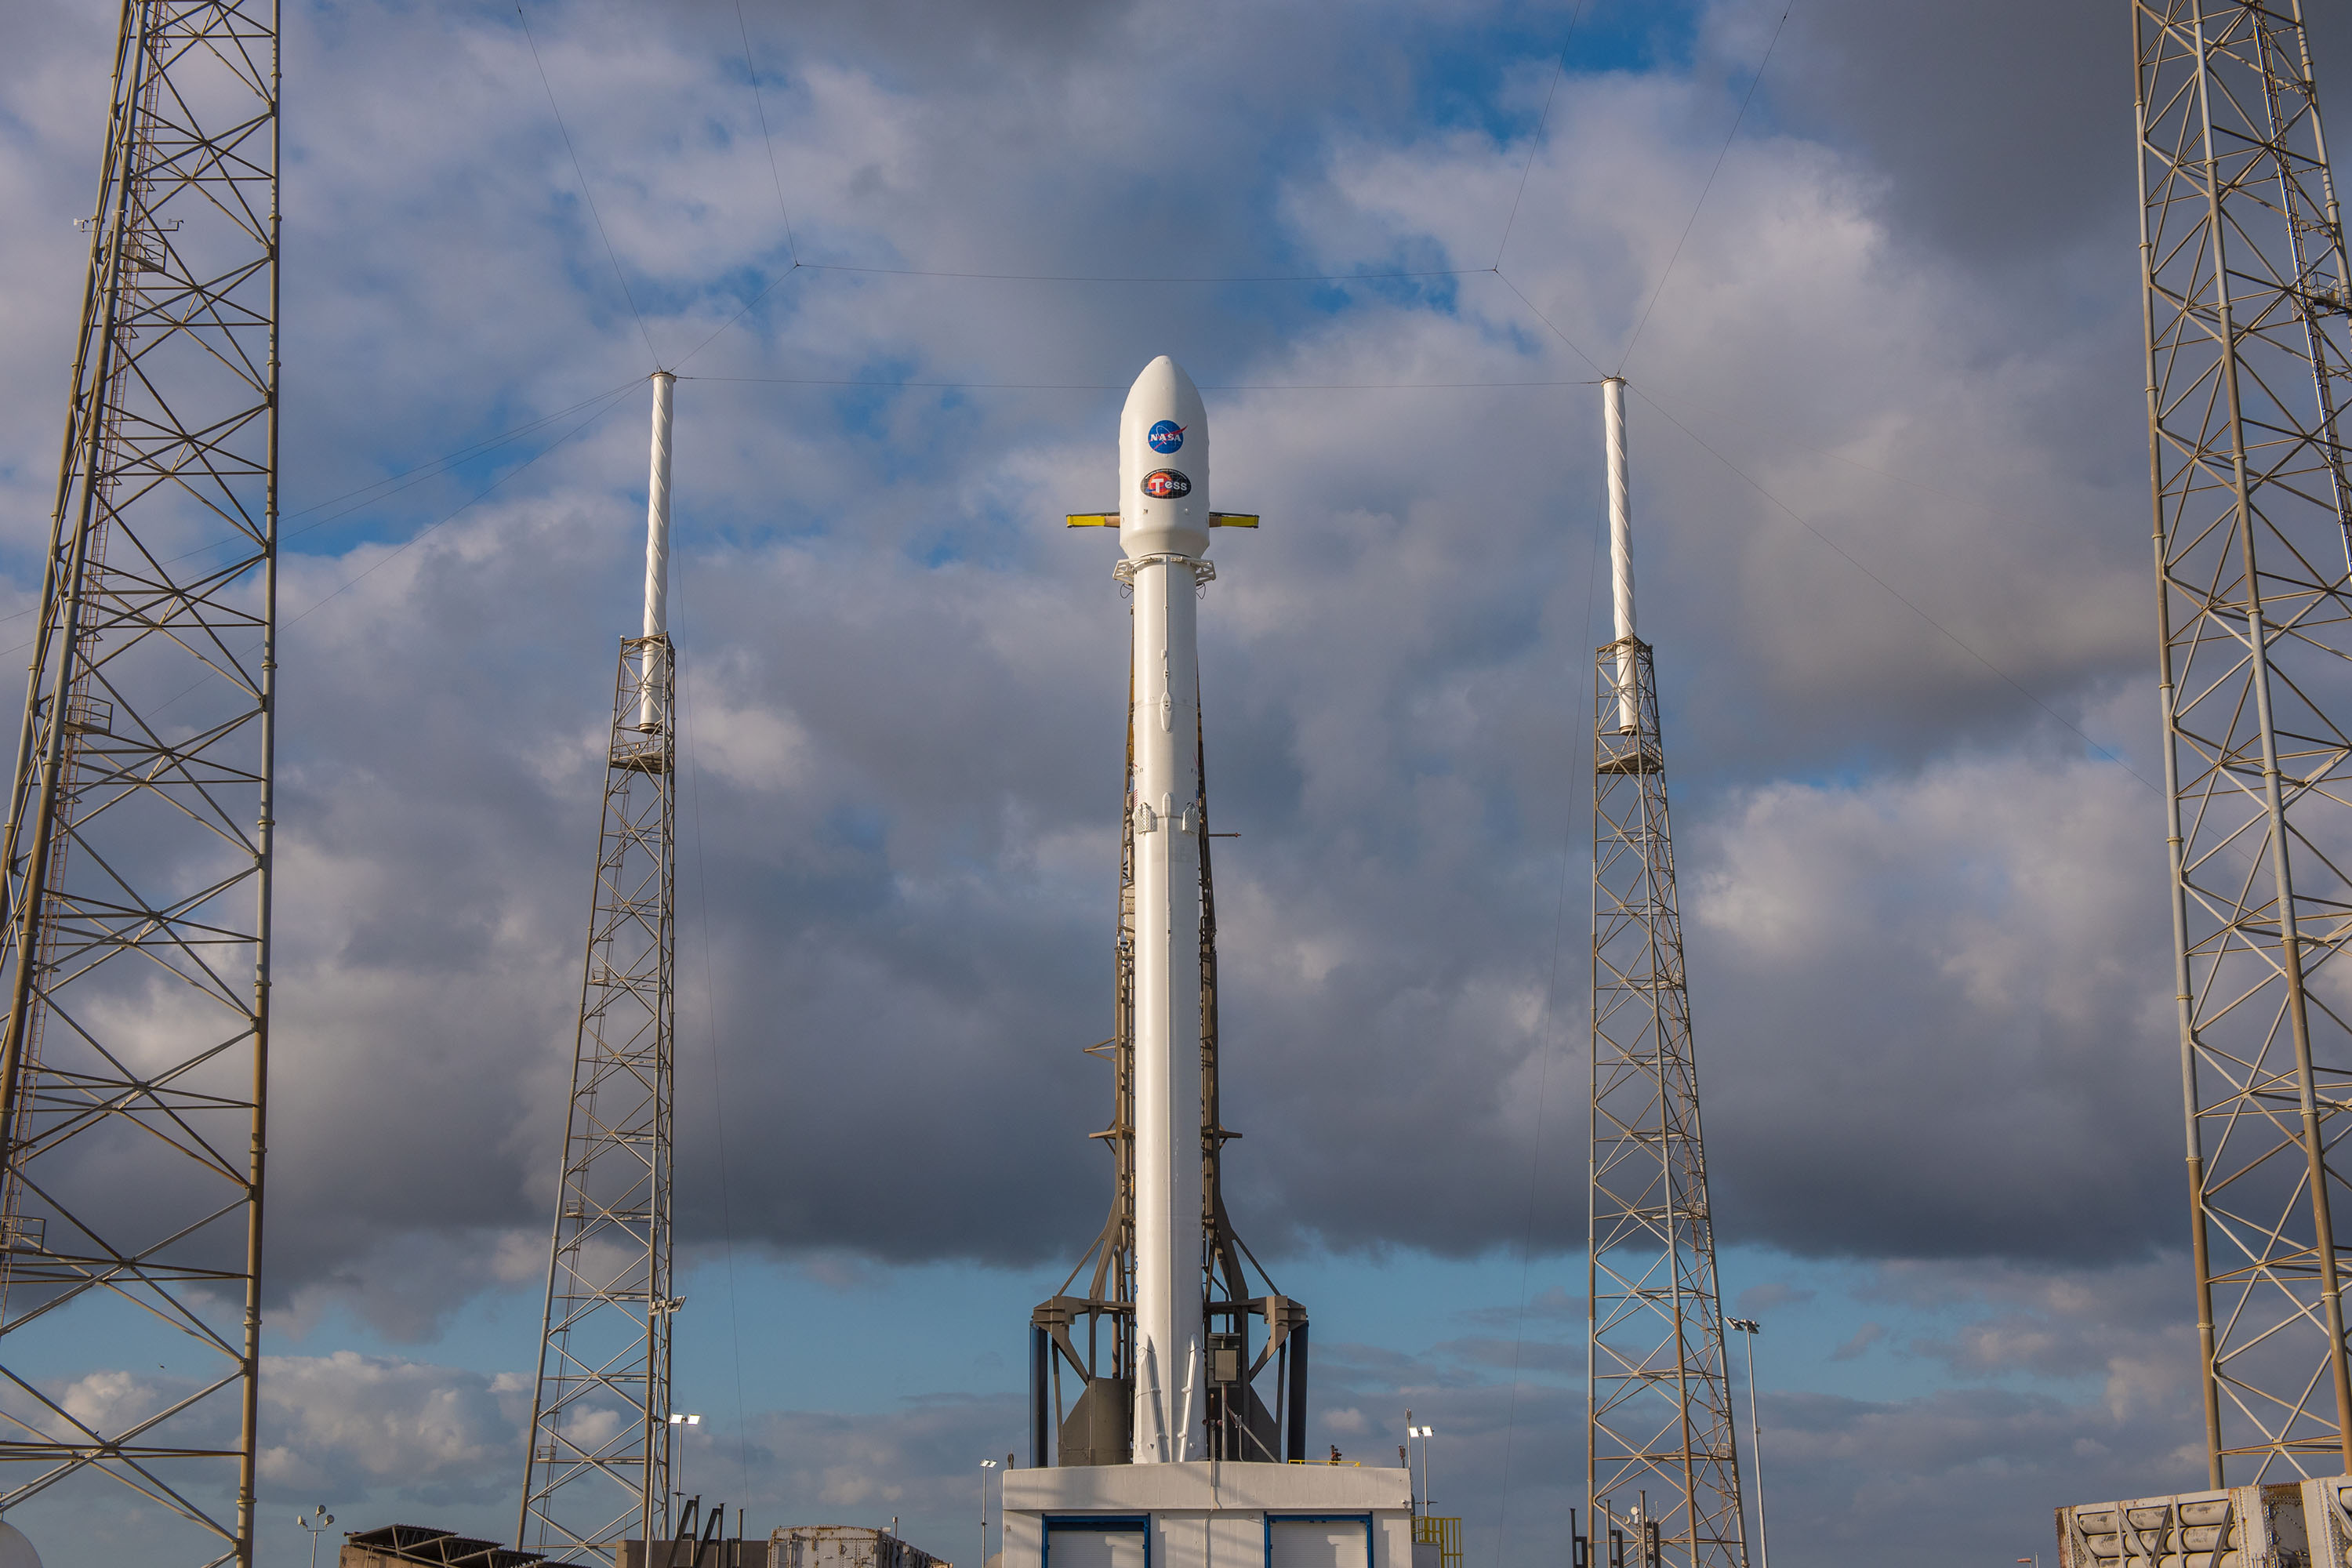 1045 vertical (SpaceX)